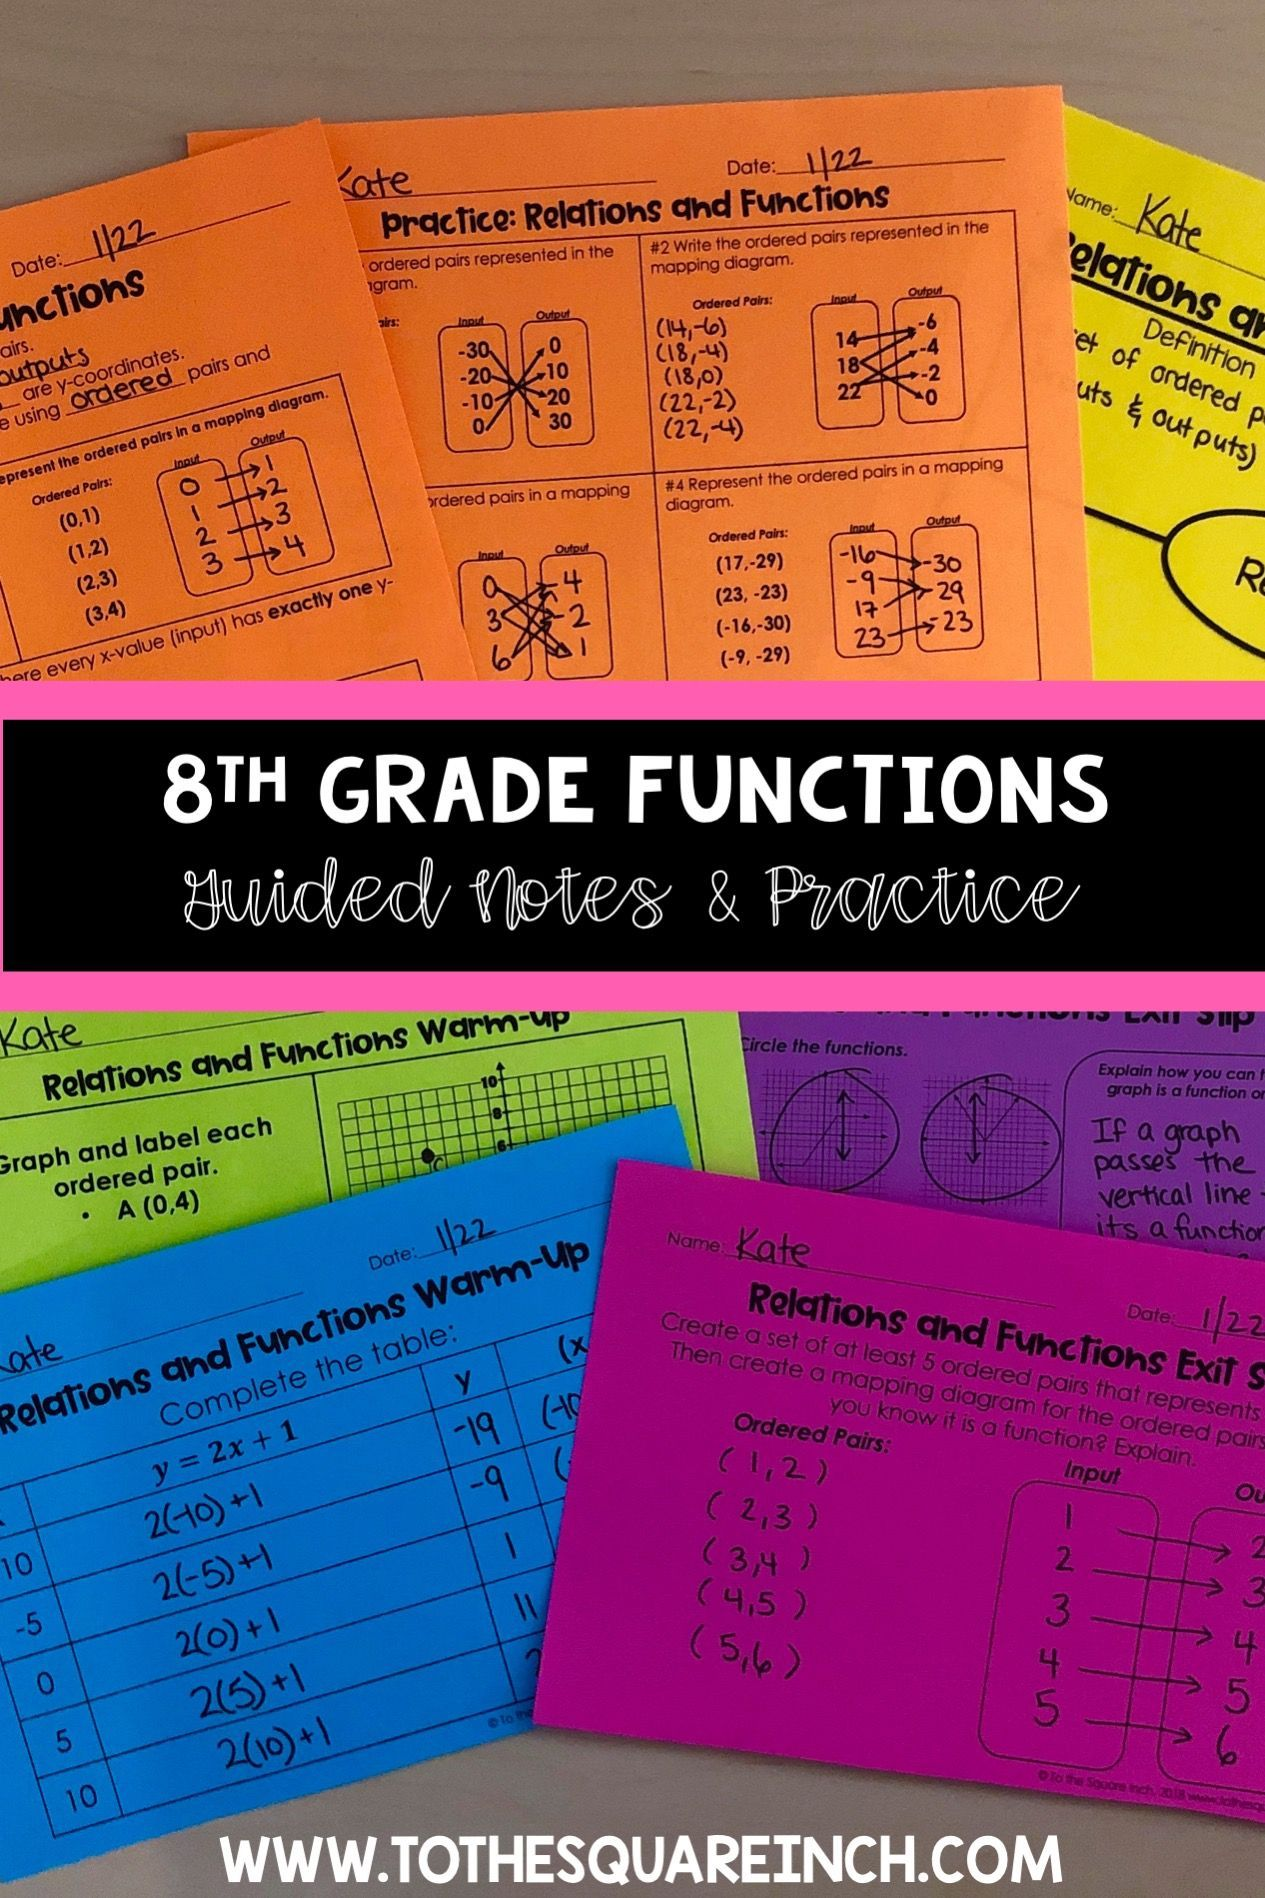 Functions 8th Grade Math Guided Notes And Activities Math Guided Notes 8th Grade Math Guided Notes [ 1898 x 1265 Pixel ]